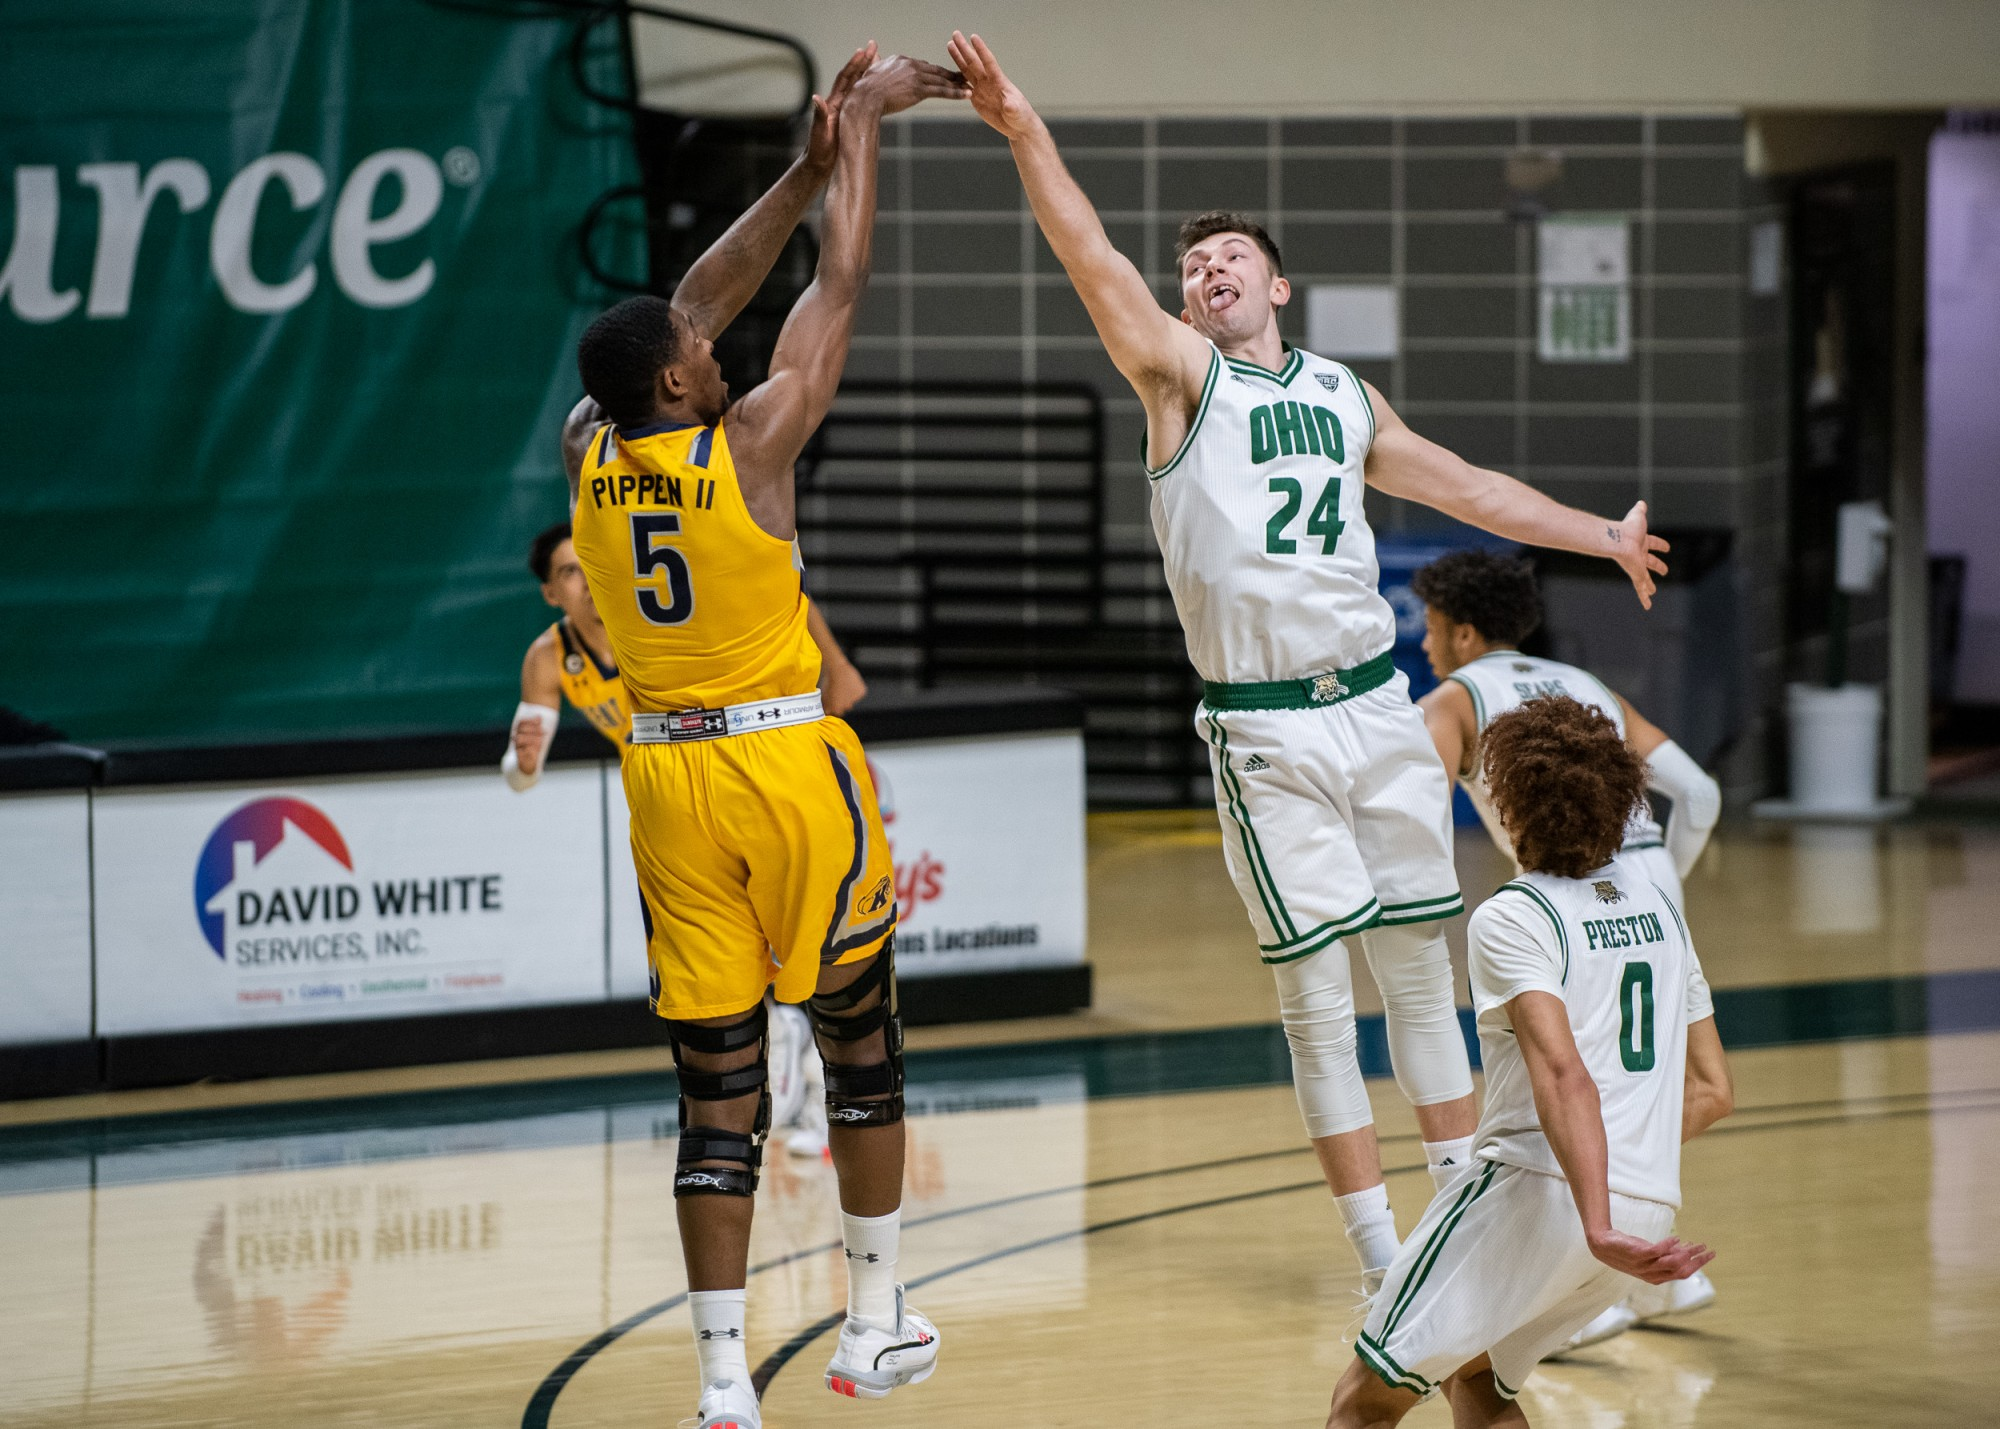 Ohio University forward Mason McMurray (24) tries to block Kent State forward Danny Pippen (5) from shooting the ball on Saturday, Jan. 16, 2021. Ohio University lost 89- 79 to Kent State. (FILE)